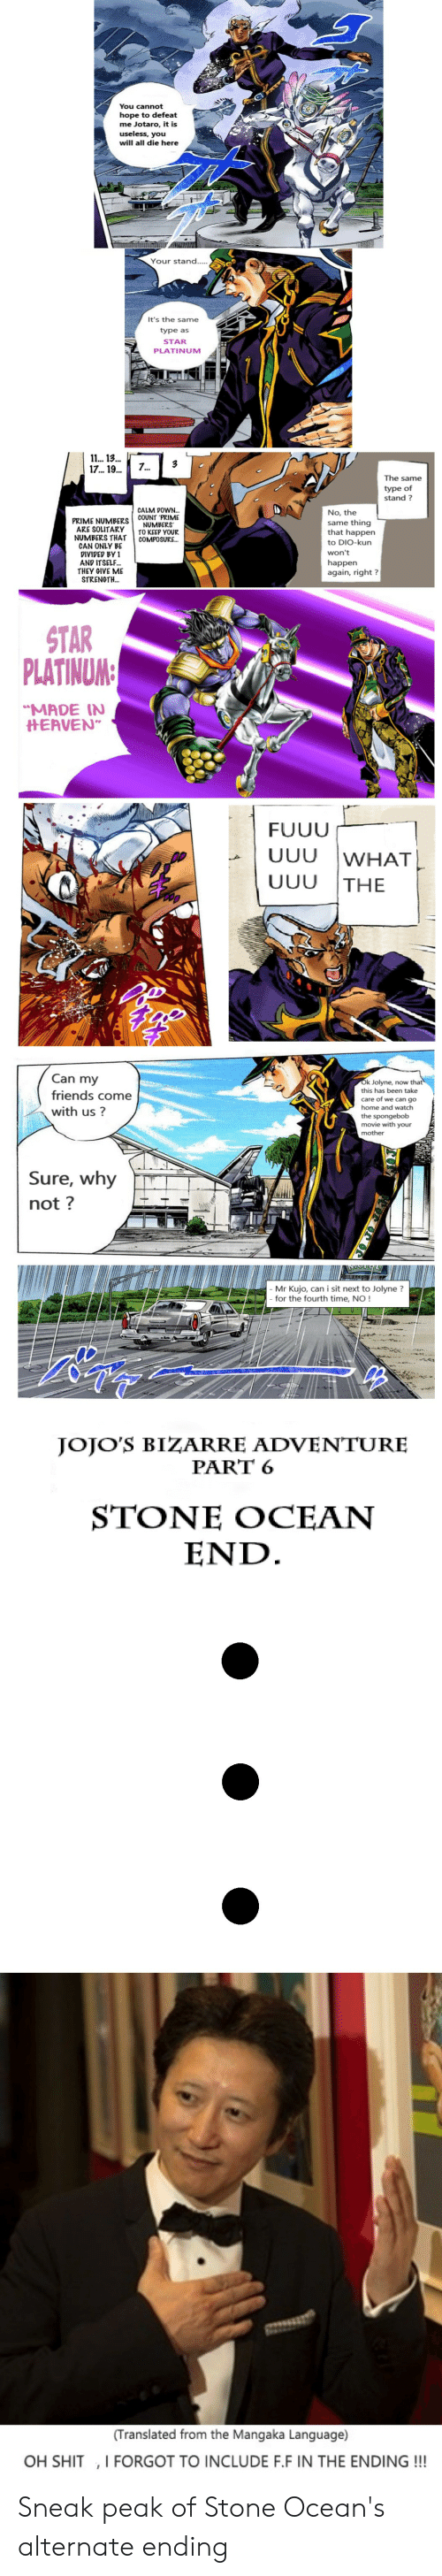 """uuu: You cannot  hope to defeat  me Jotaro, it is  useless, you  will all die here  Your stand.....  It's the same  type as  STAR  PLATINUM  11.. 13..  17... 19  3  7...  The same  type of  stand?  CALM DOWN...  COUNT PRIME  NUMBERS  TO KEEP YOUR  COMPOSURE..  No, the  PRIME NUMBERS  ARE SOLITARY  NUMBERS THAT  CAN ONLY BE  DIVIDED BY 1  AND ITSELF...  THEY GIVE ME  STRENGTH..  same thing  that happen  to DIO-kun  won't  happen  again, right?  STAR  PLATINUM:  """"MADE IN  HEAVEN  FUUU  UUU  WHAT  UUU  THE  Can my  Ok Jolyne, now that  this has been take  friends come  care of we can go  home and watch  with us?  the spongebob  movie with your  mother  Sure, why  not?  Mr Kujo, can i sit next to Jolyne?  - for the fourth time, NO !  B  JOJO'S BIZARRE ADVENTURE  PART 6  STONΕ OCEAΝ  END  (Translated from the Mangaka Language)  OH SHIT ,I FORGOT TO INCLUDE F.F IN THE ENDING!!! Sneak peak of Stone Ocean's alternate ending"""